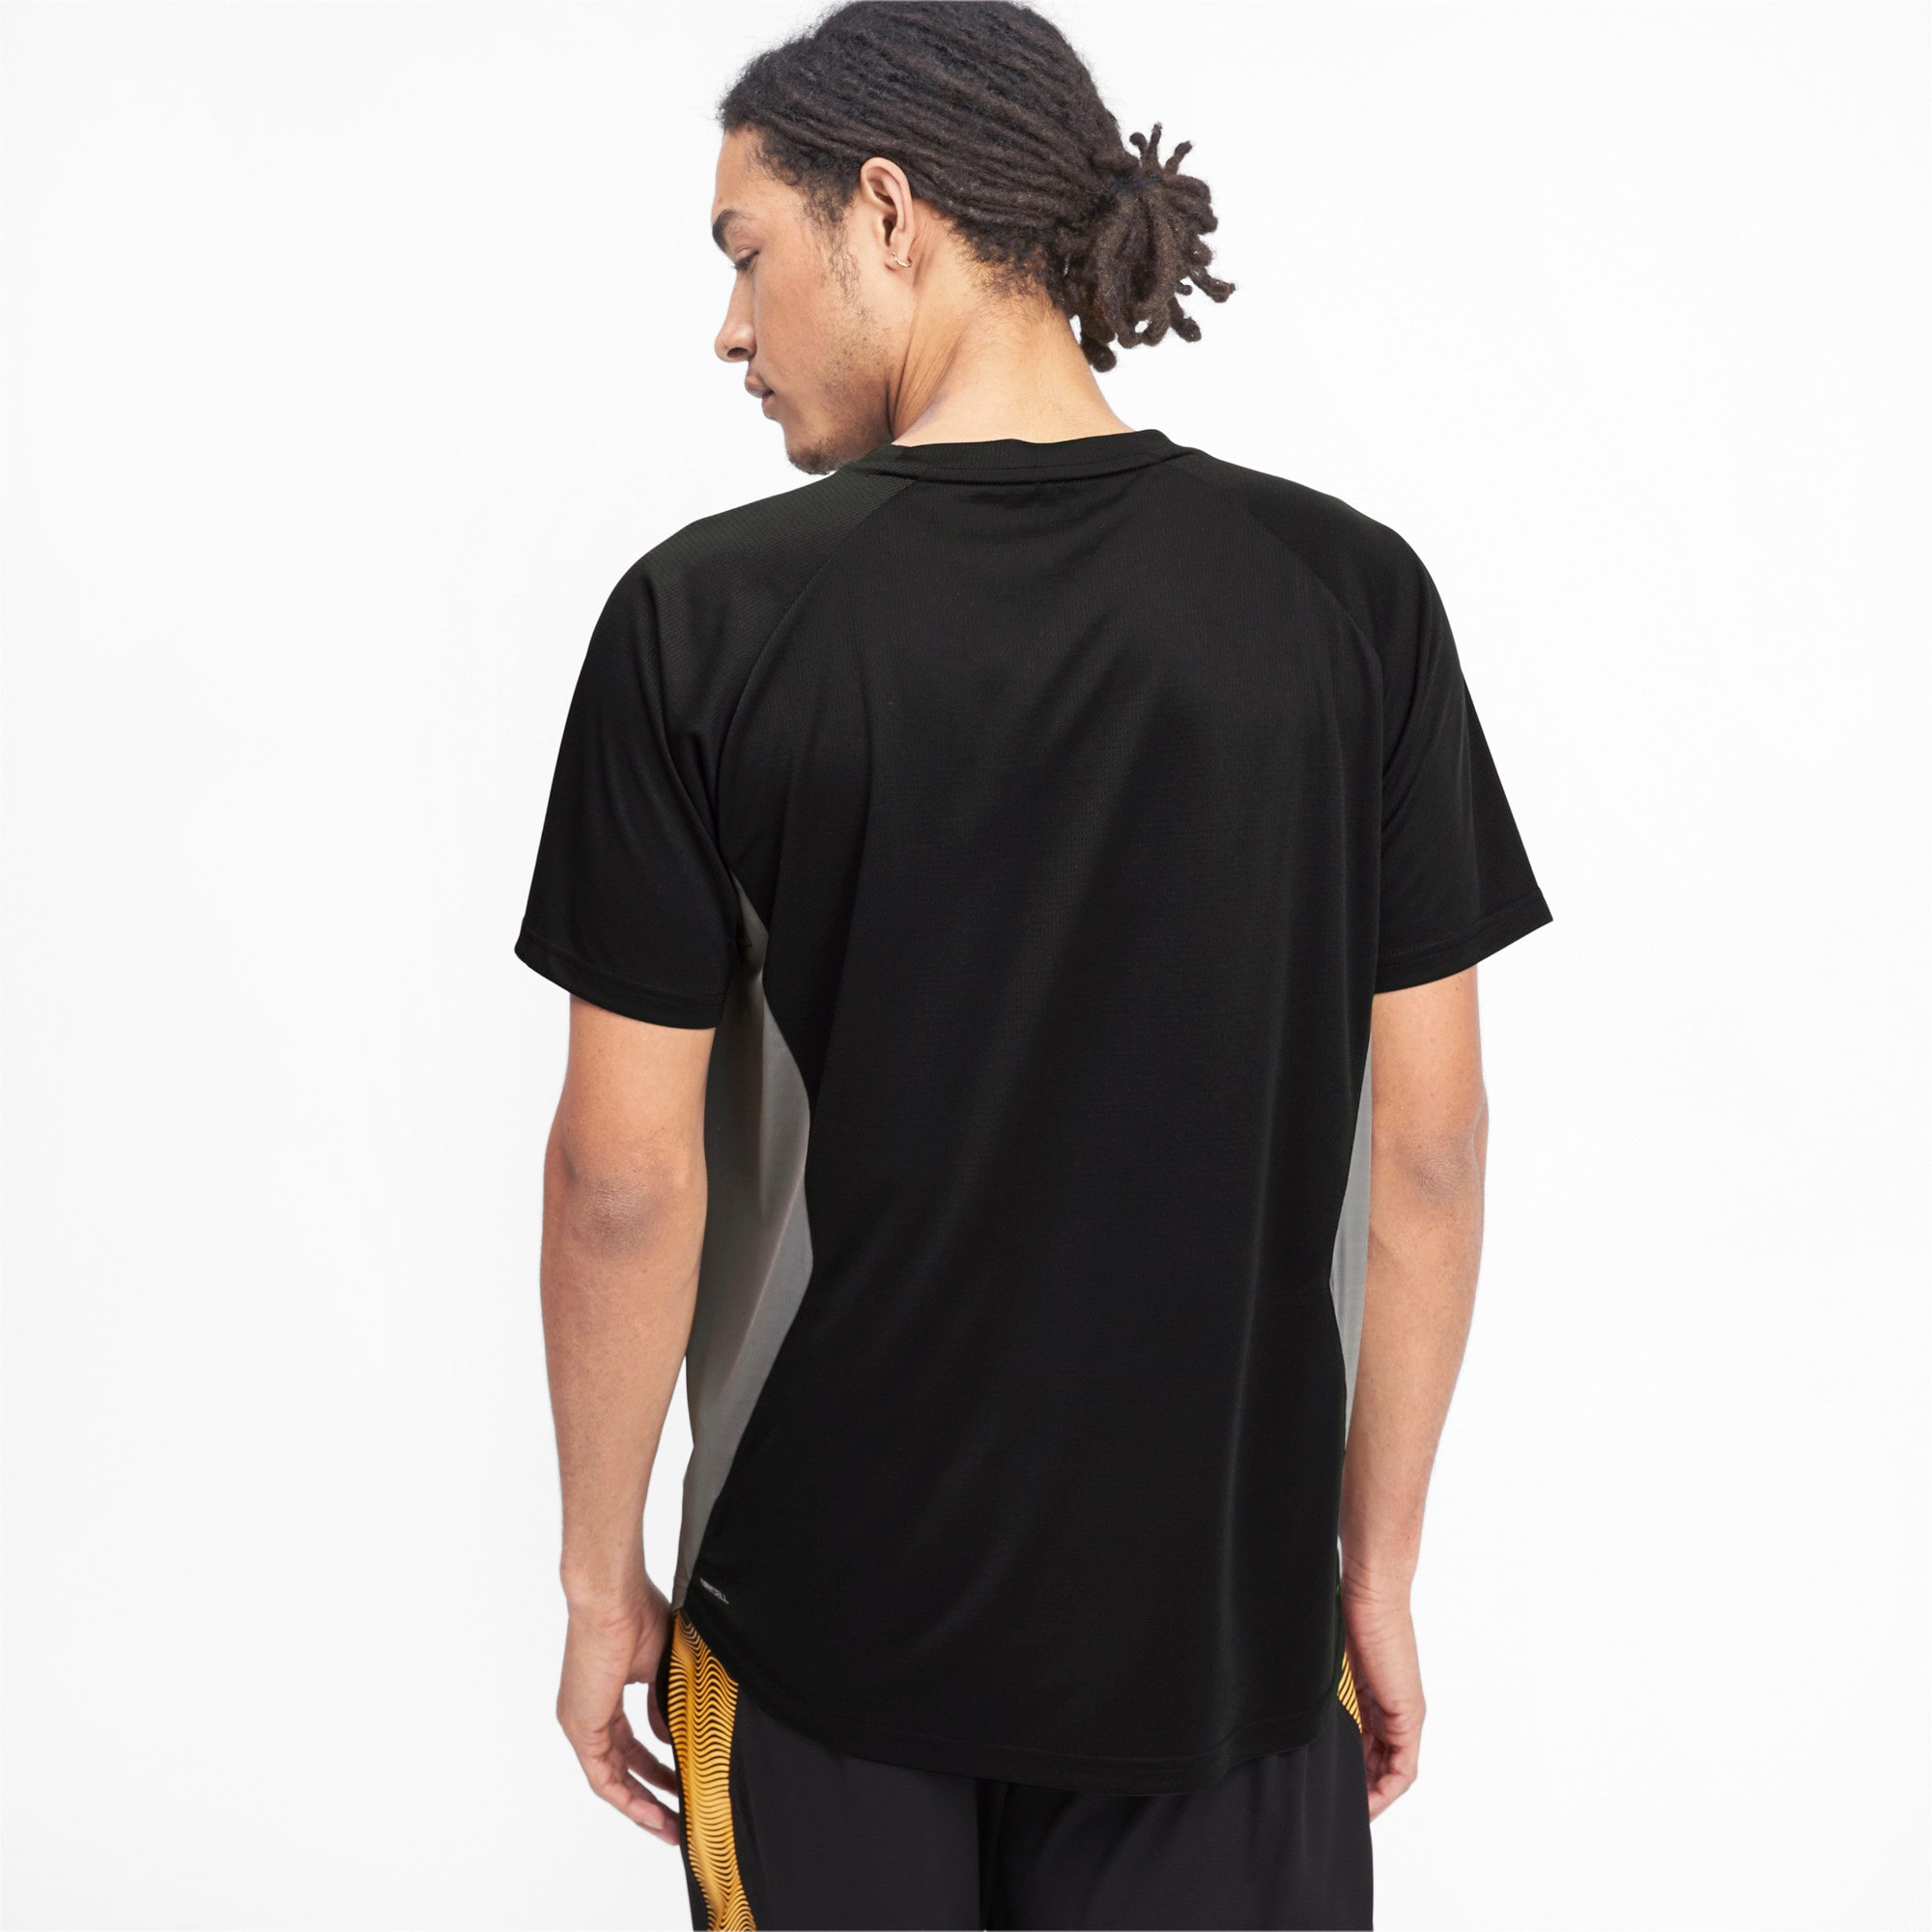 Thumbnail 2 of Collective Loud Men's Tee, CASTLEROCK-Puma Black, medium